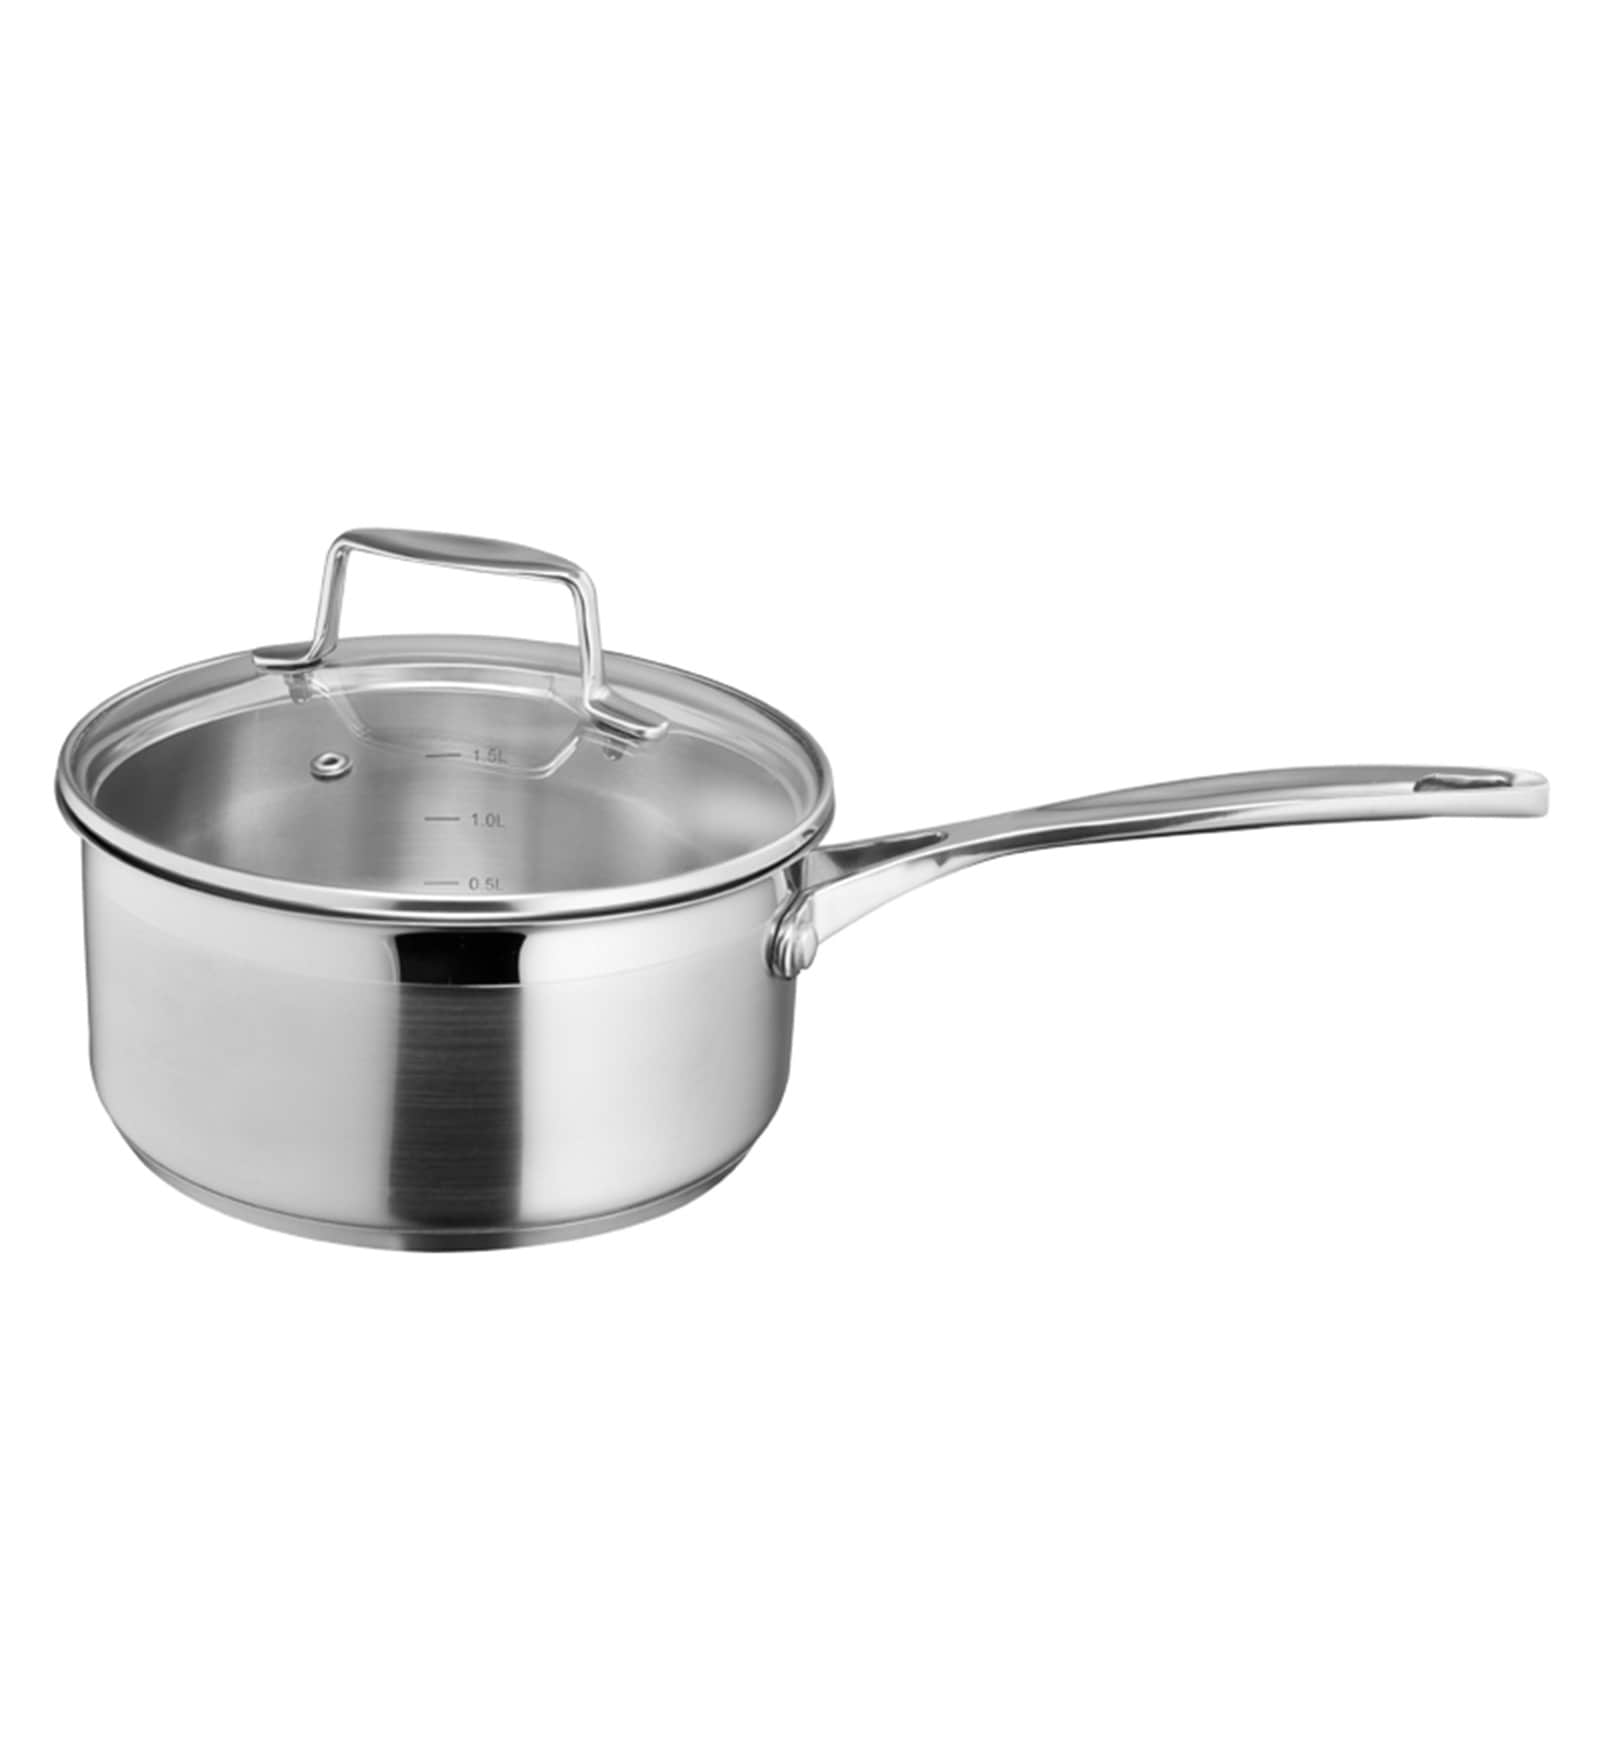 Stainless Steel 1.5 L Non Stick Sauce Pan with Glass Lid by Arttdinox